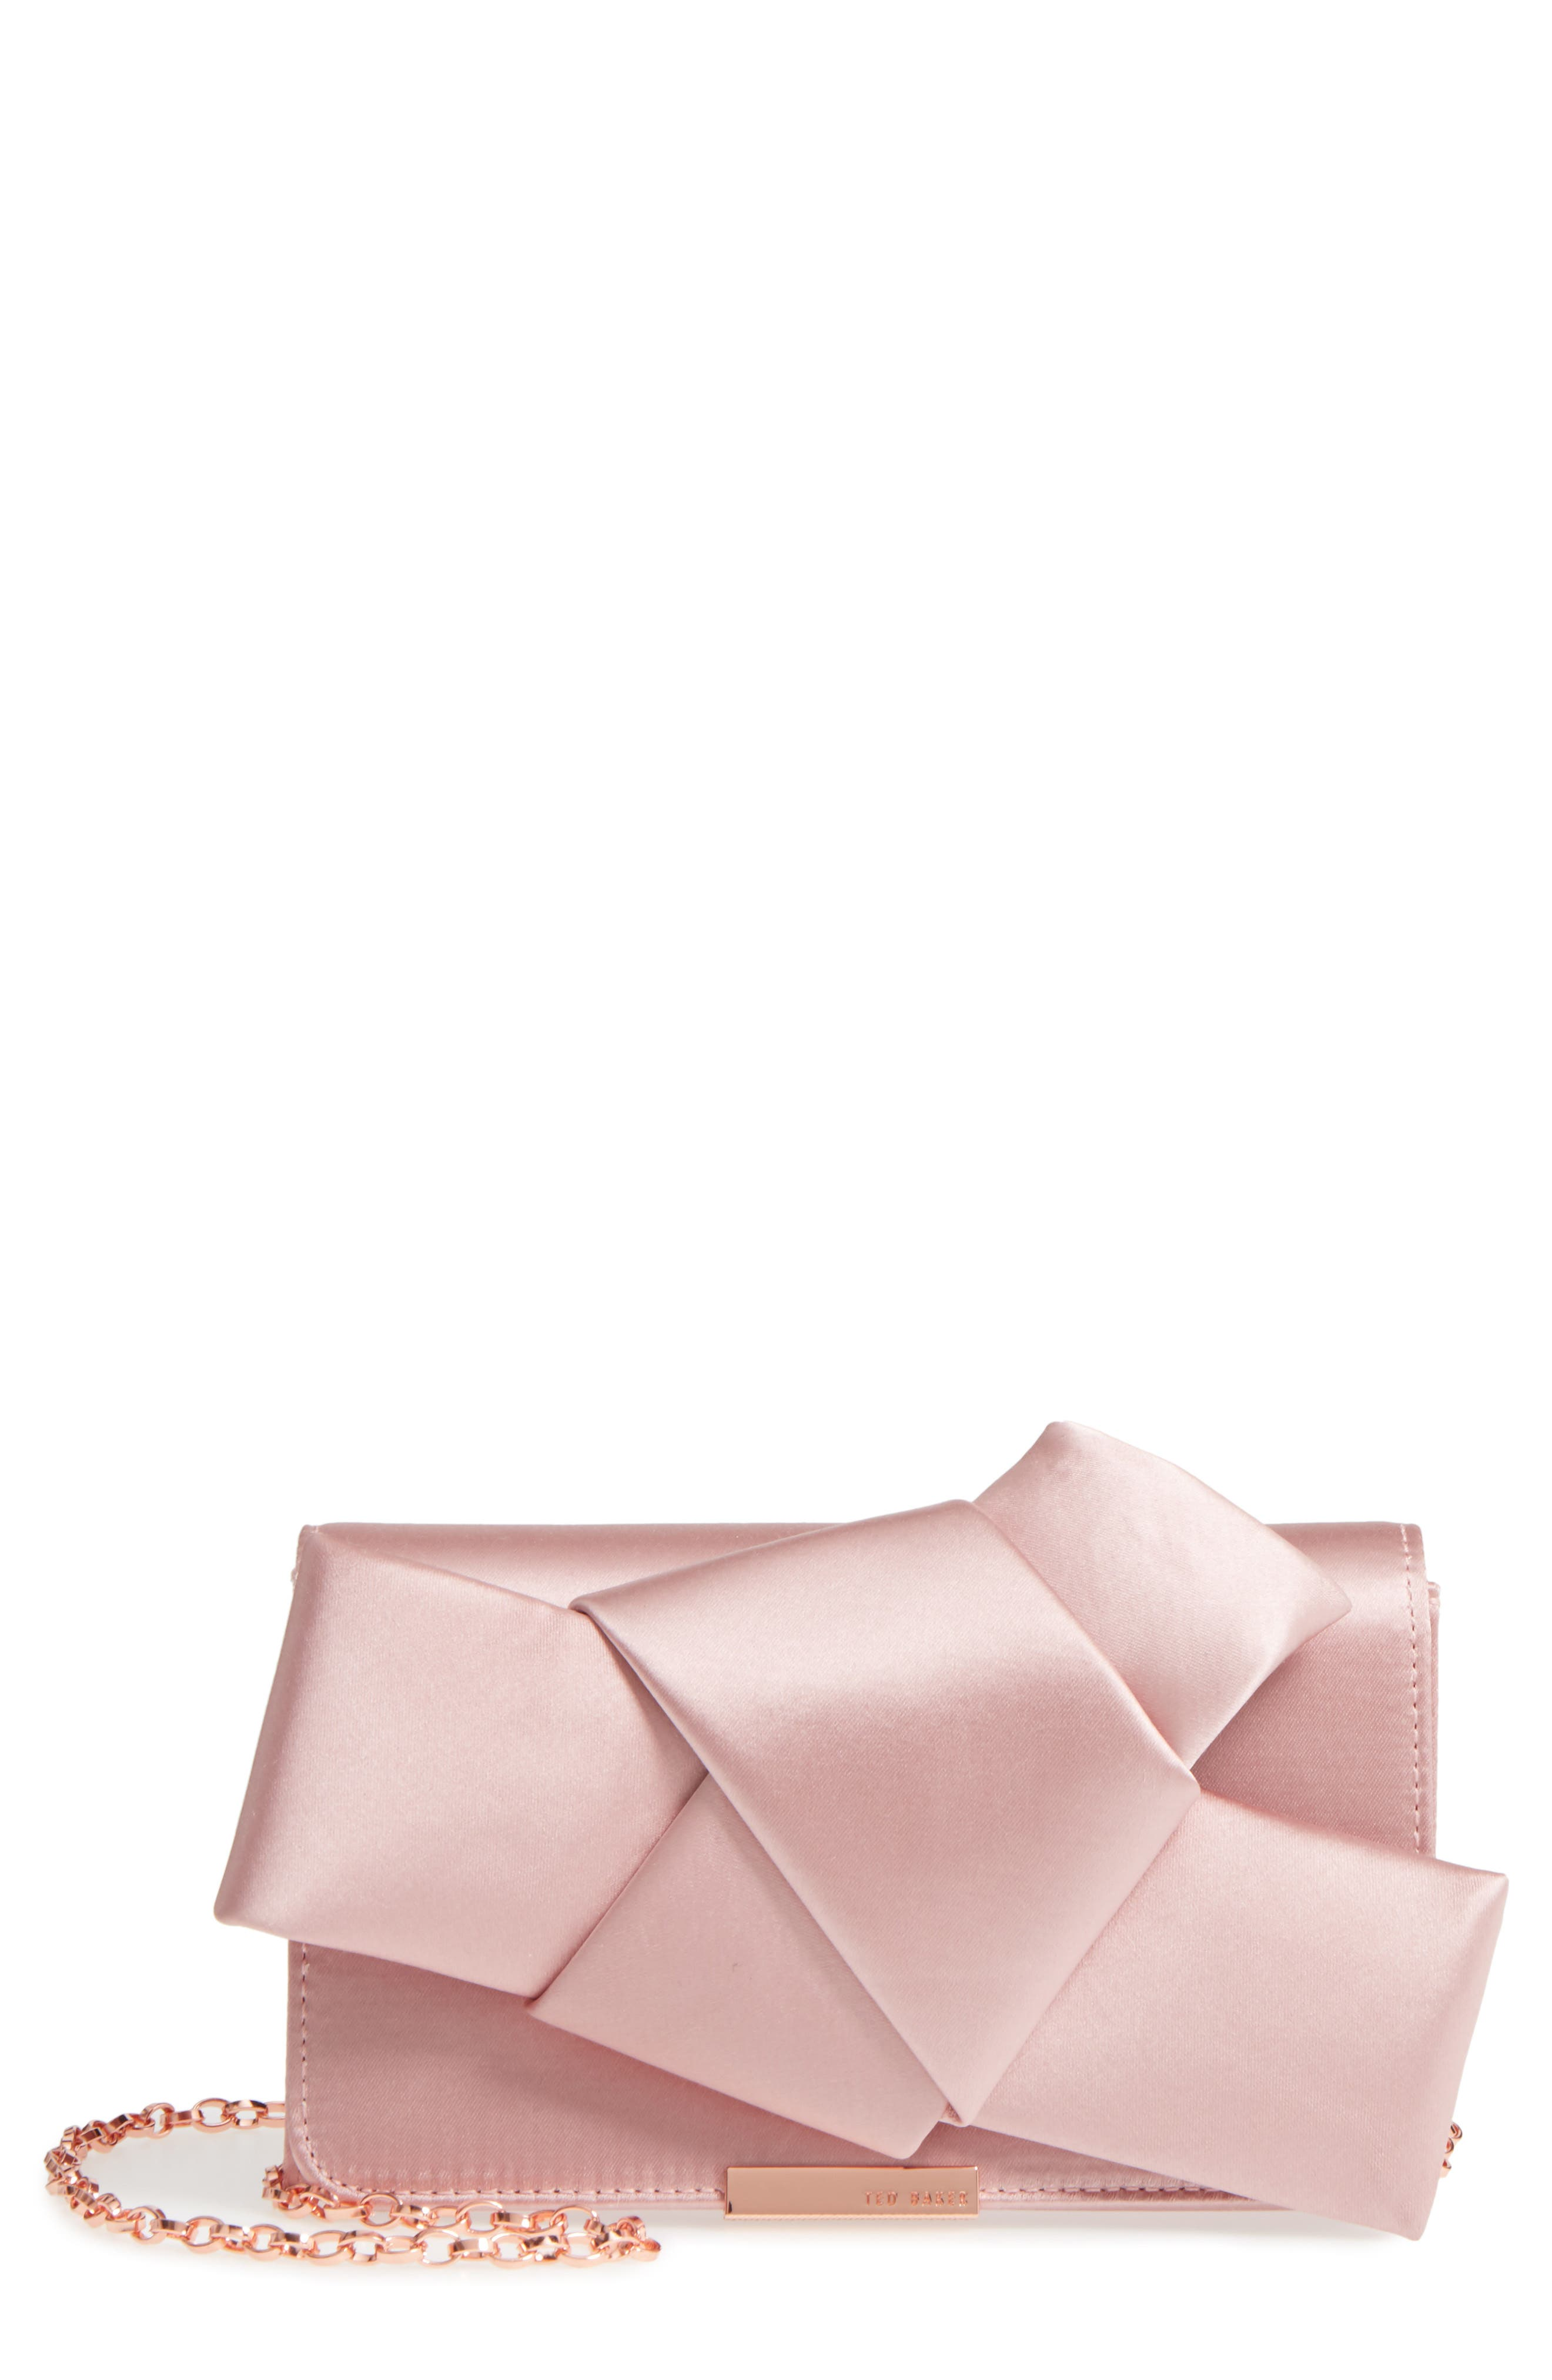 TED BAKER LONDON, Fefee Satin Knotted Bow Clutch, Main thumbnail 1, color, LIGHT PINK